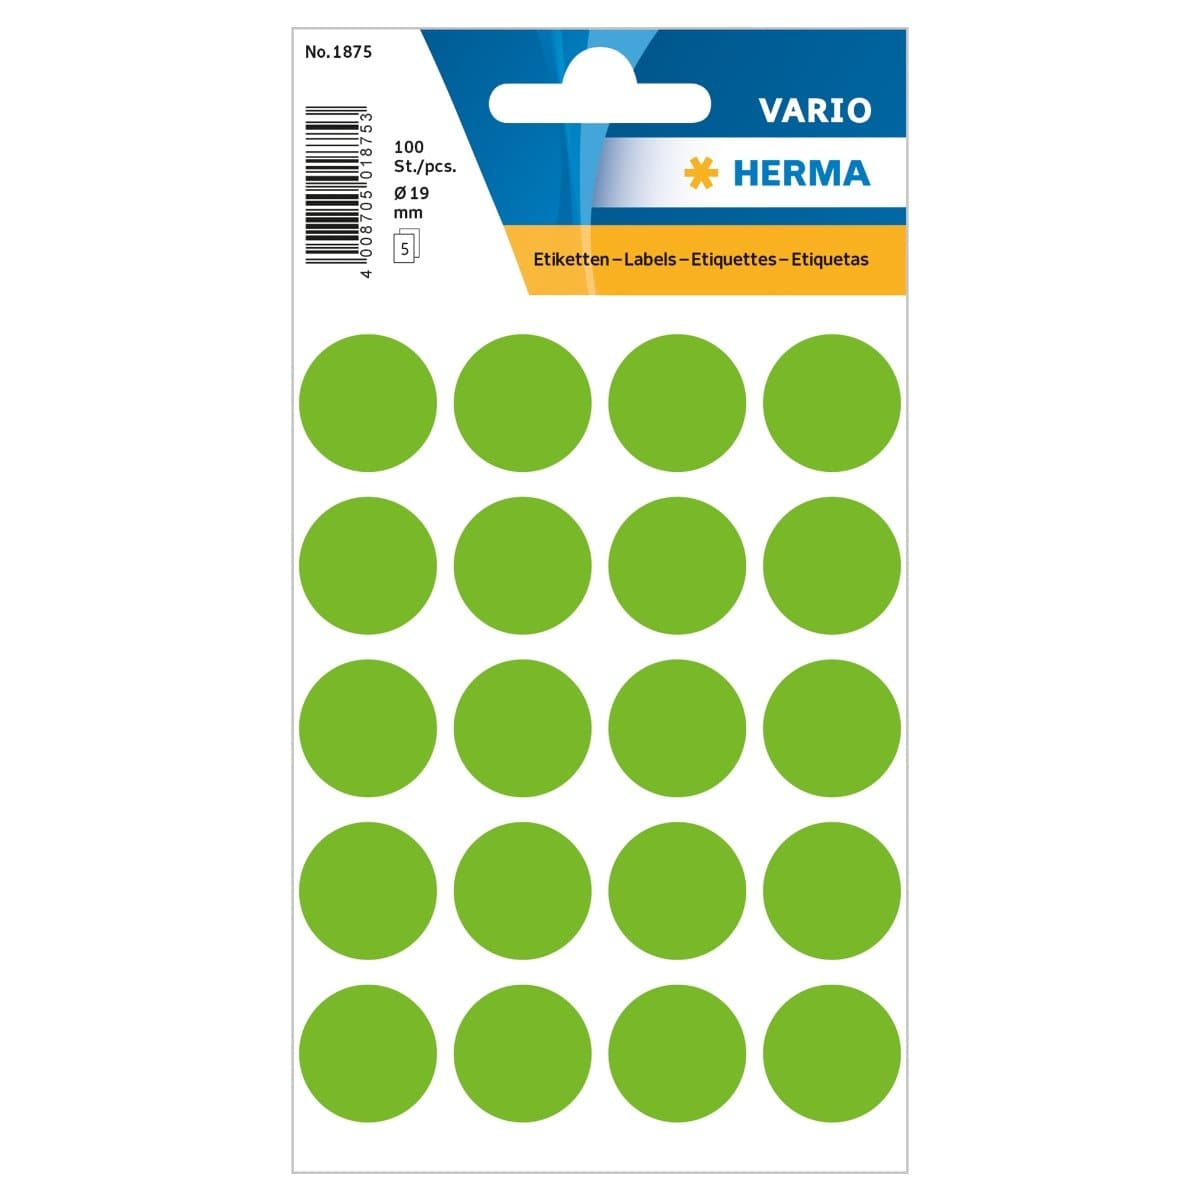 Herma Vario Sticker Color Dots, 19 mm, 100/pack, Green